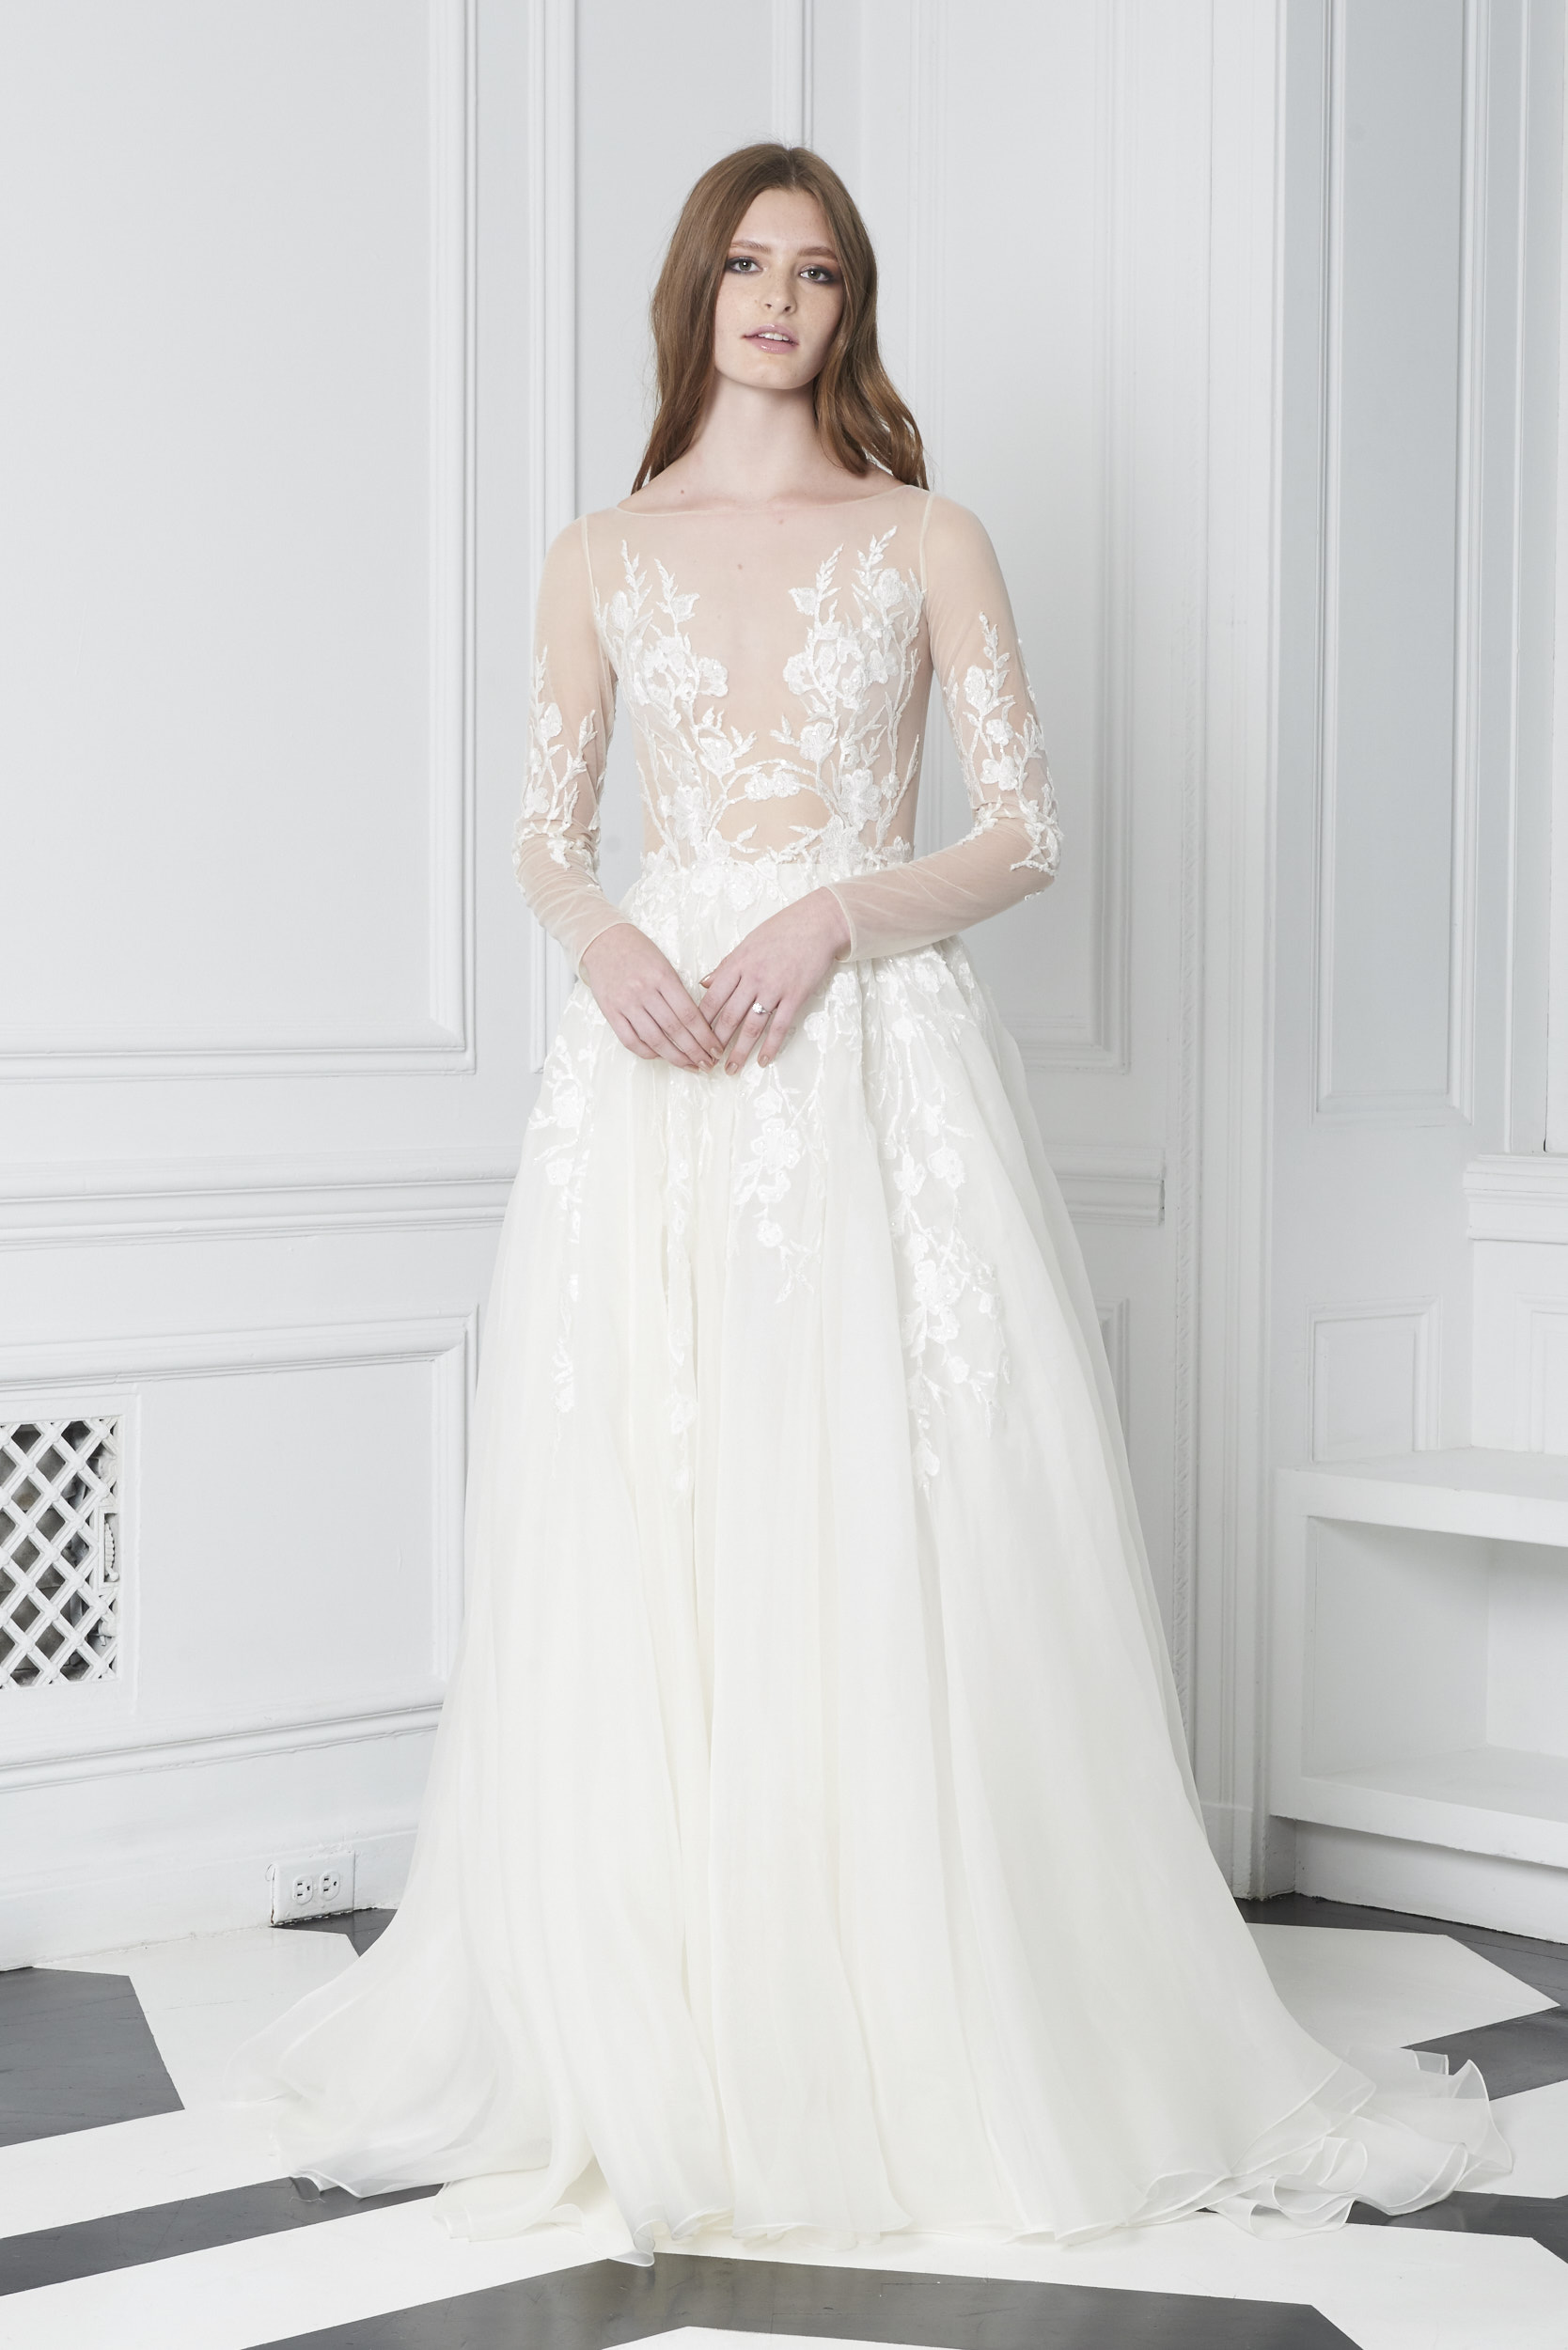 Monique Lhuillier Bliss Fall 2018 Embroidered Ball Gown Wedding Dress with Sheer Long Sleeves